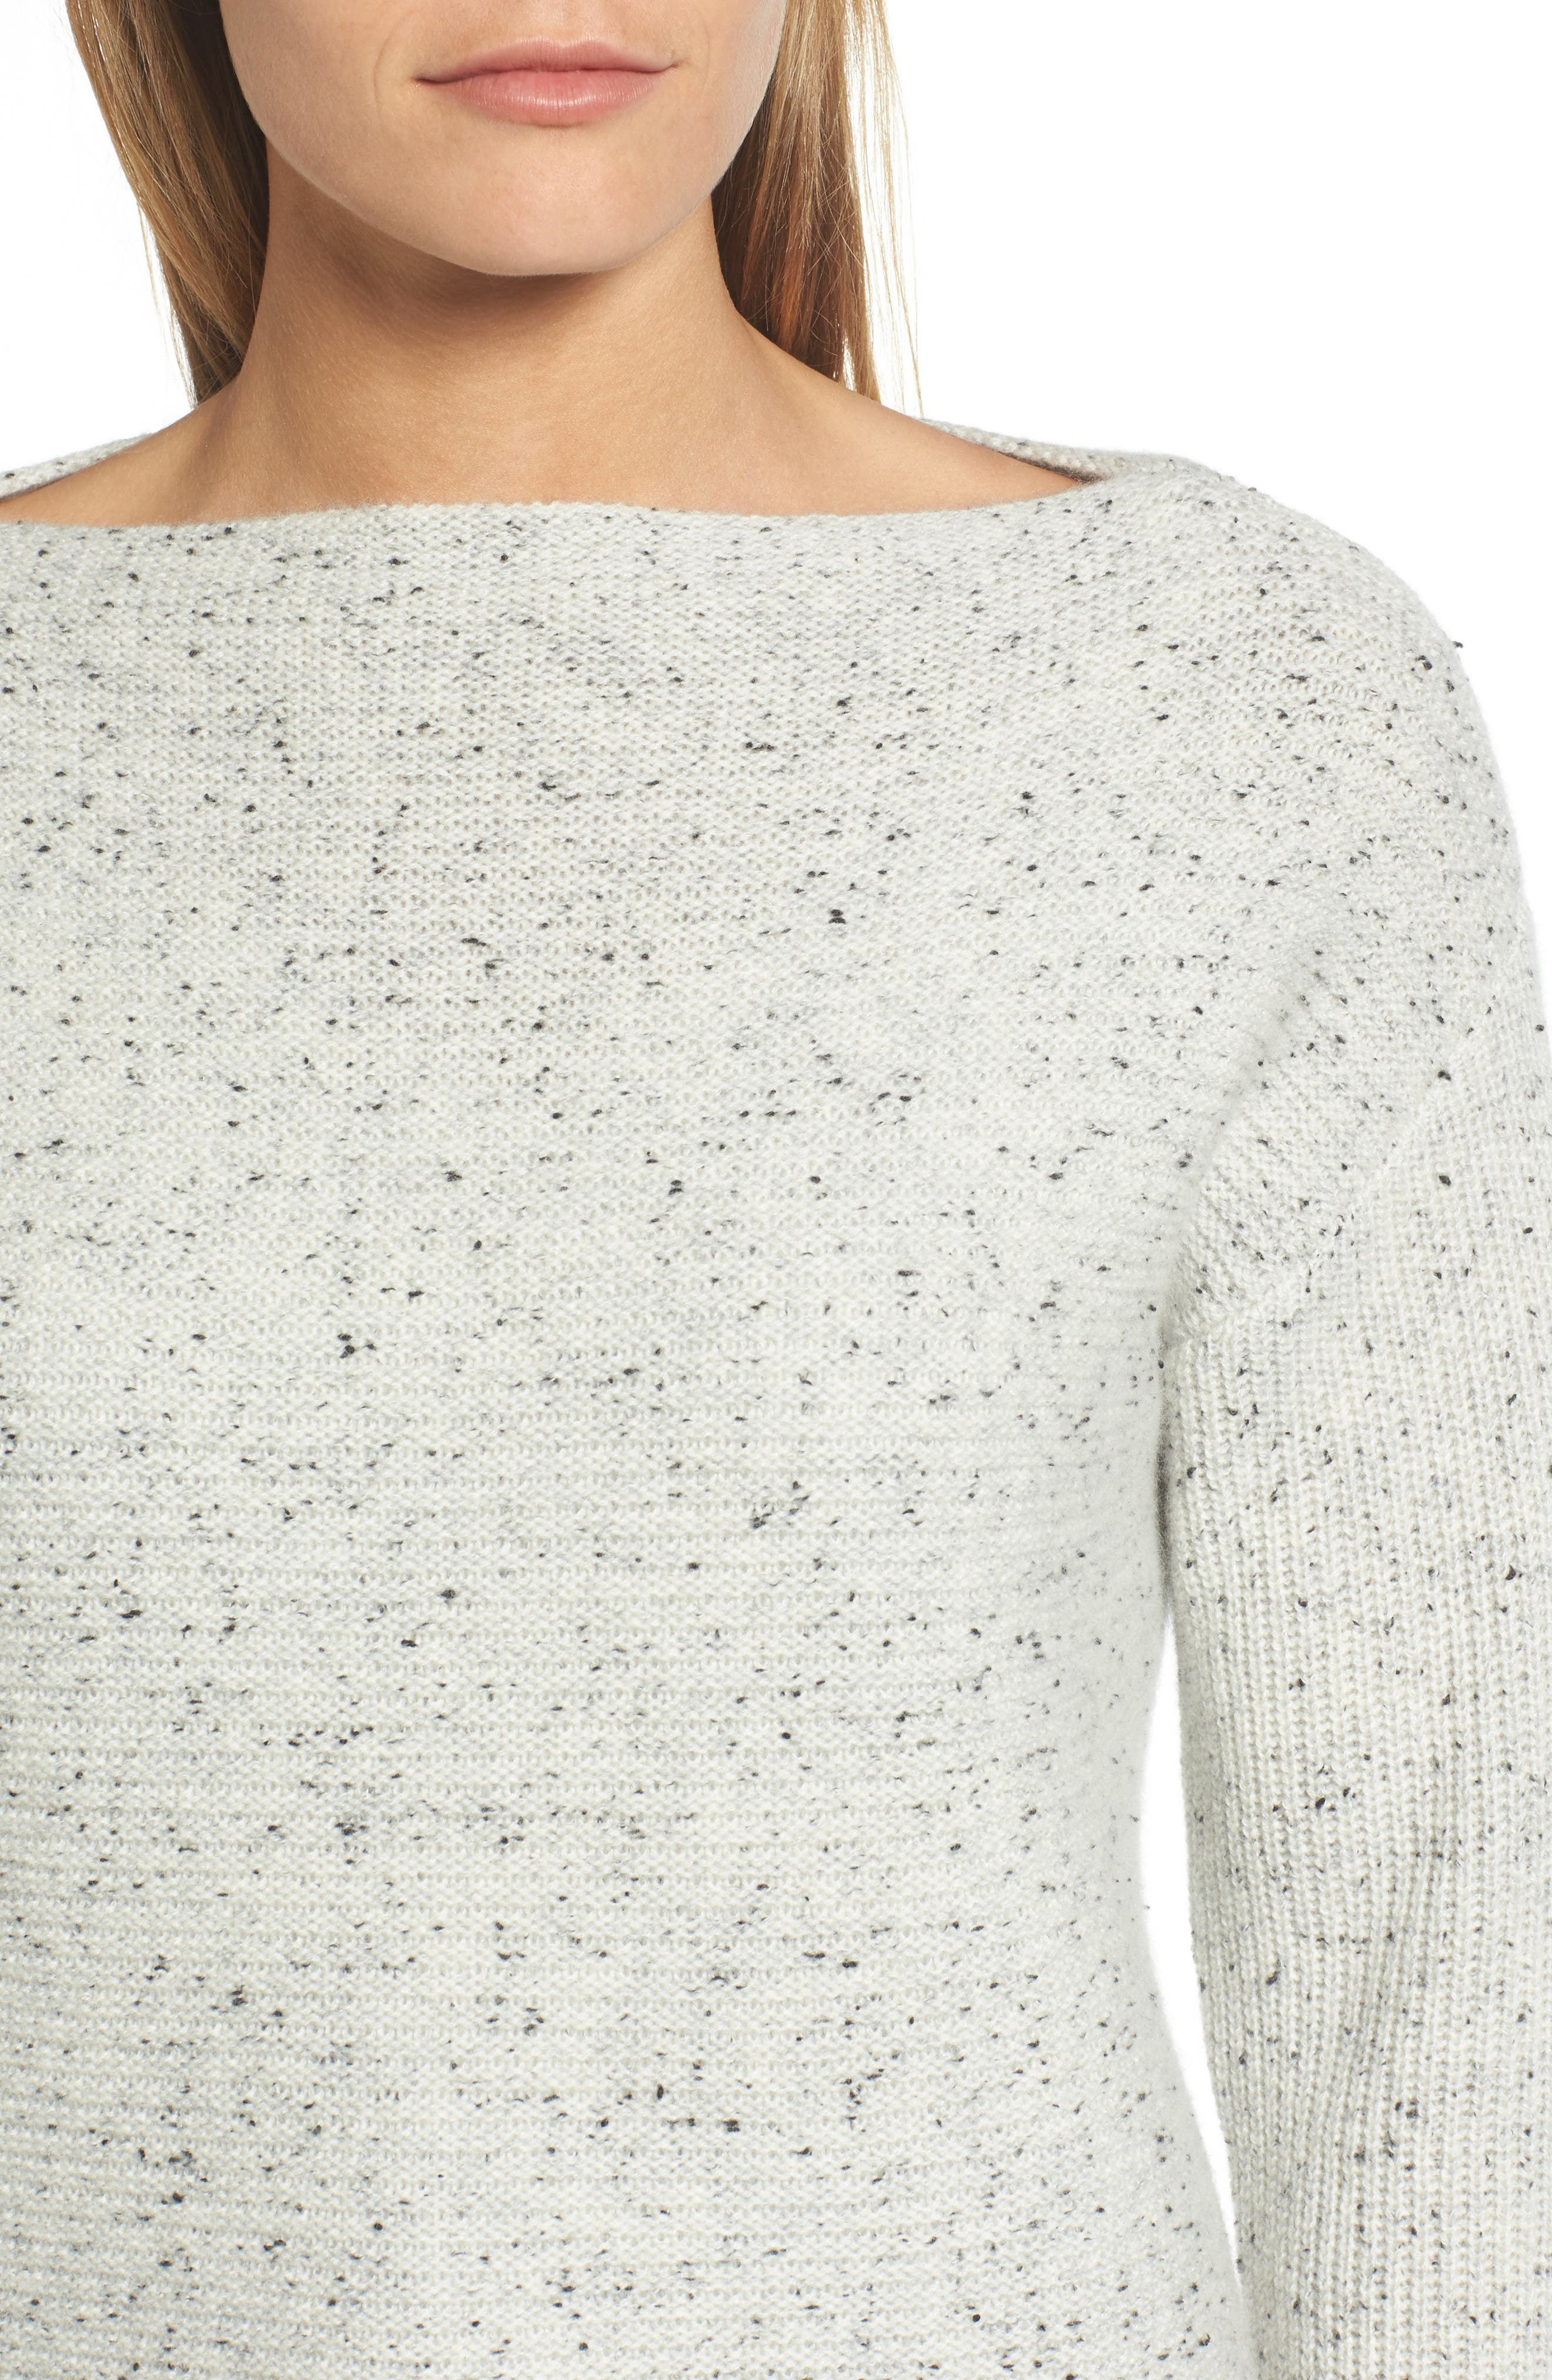 Textured Cashmere Sweater,                             Alternate thumbnail 4, color,                             Grey Clay Tweed